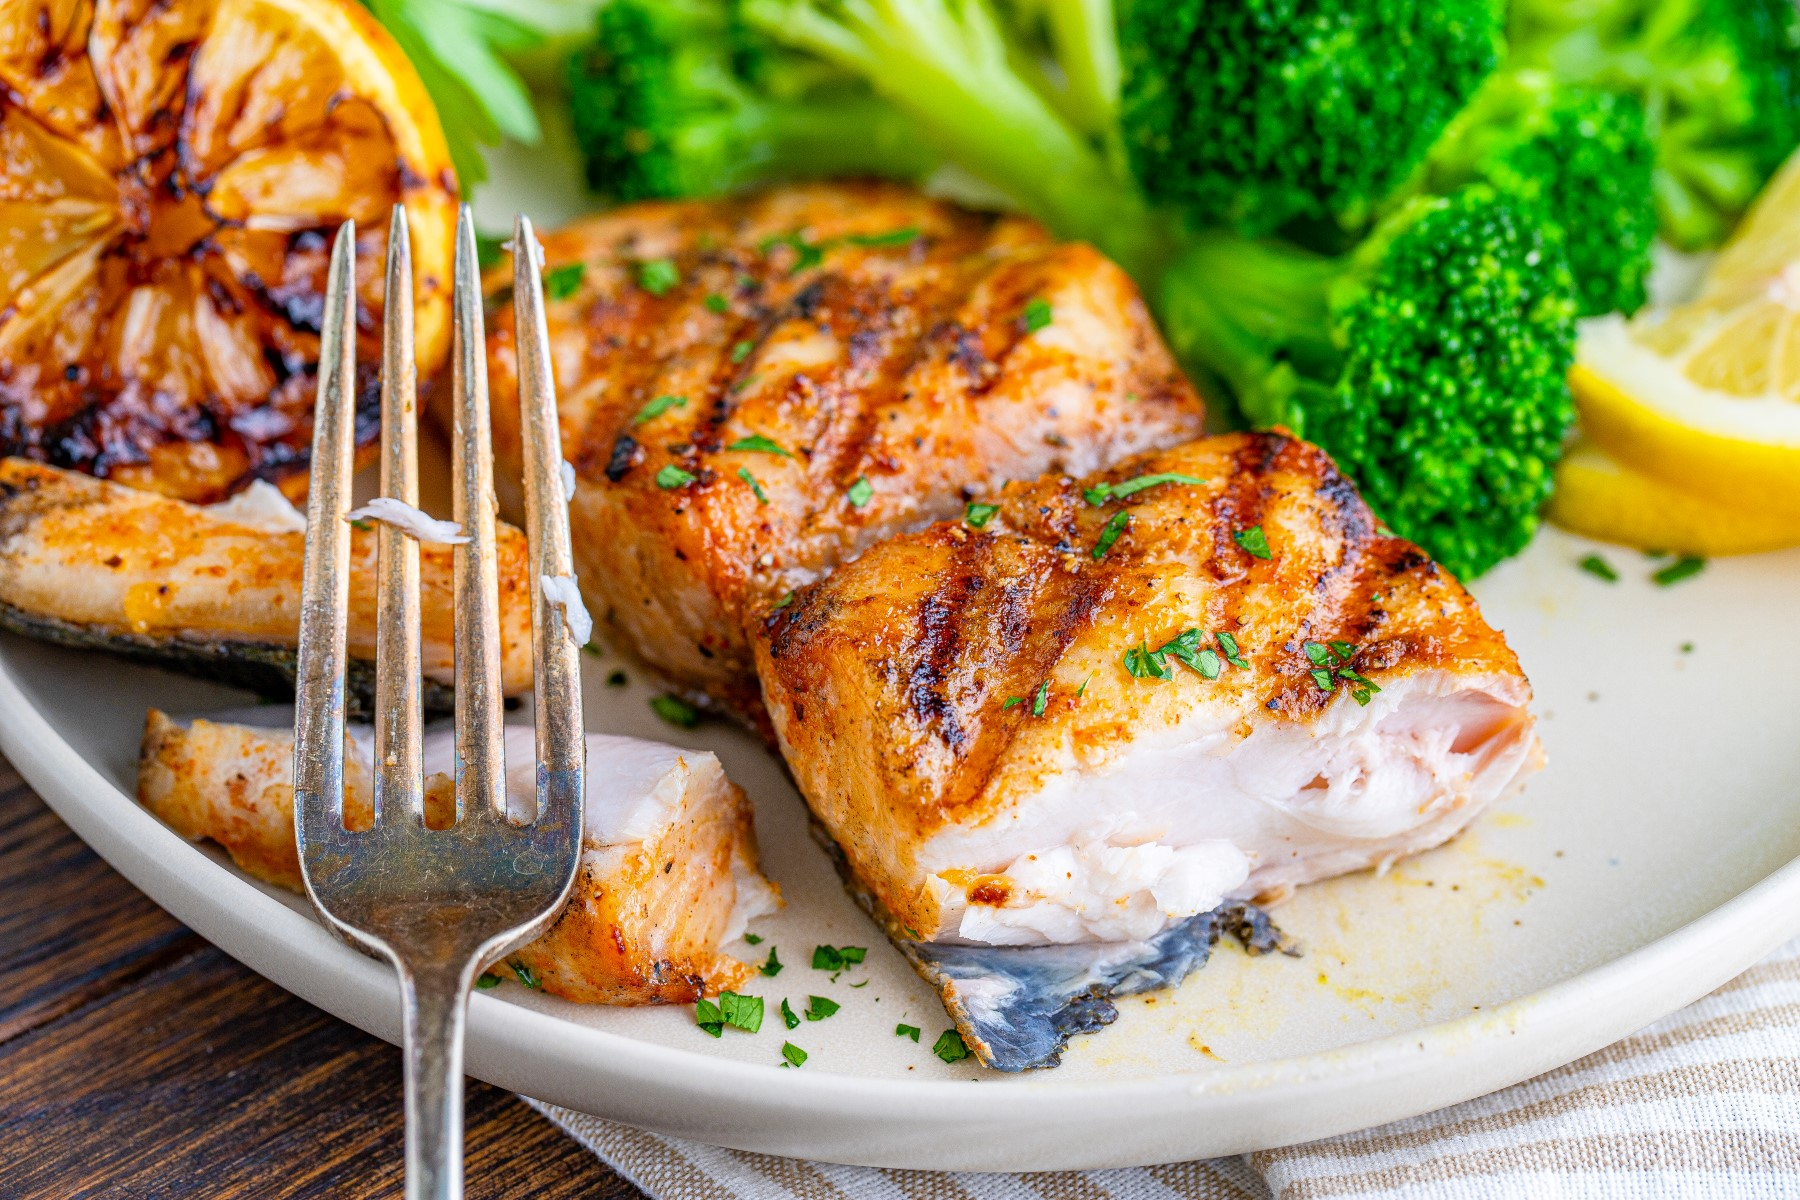 Grilled mahi mahi cut showing the center of the fillet on a white plate with a fork and broccoli.